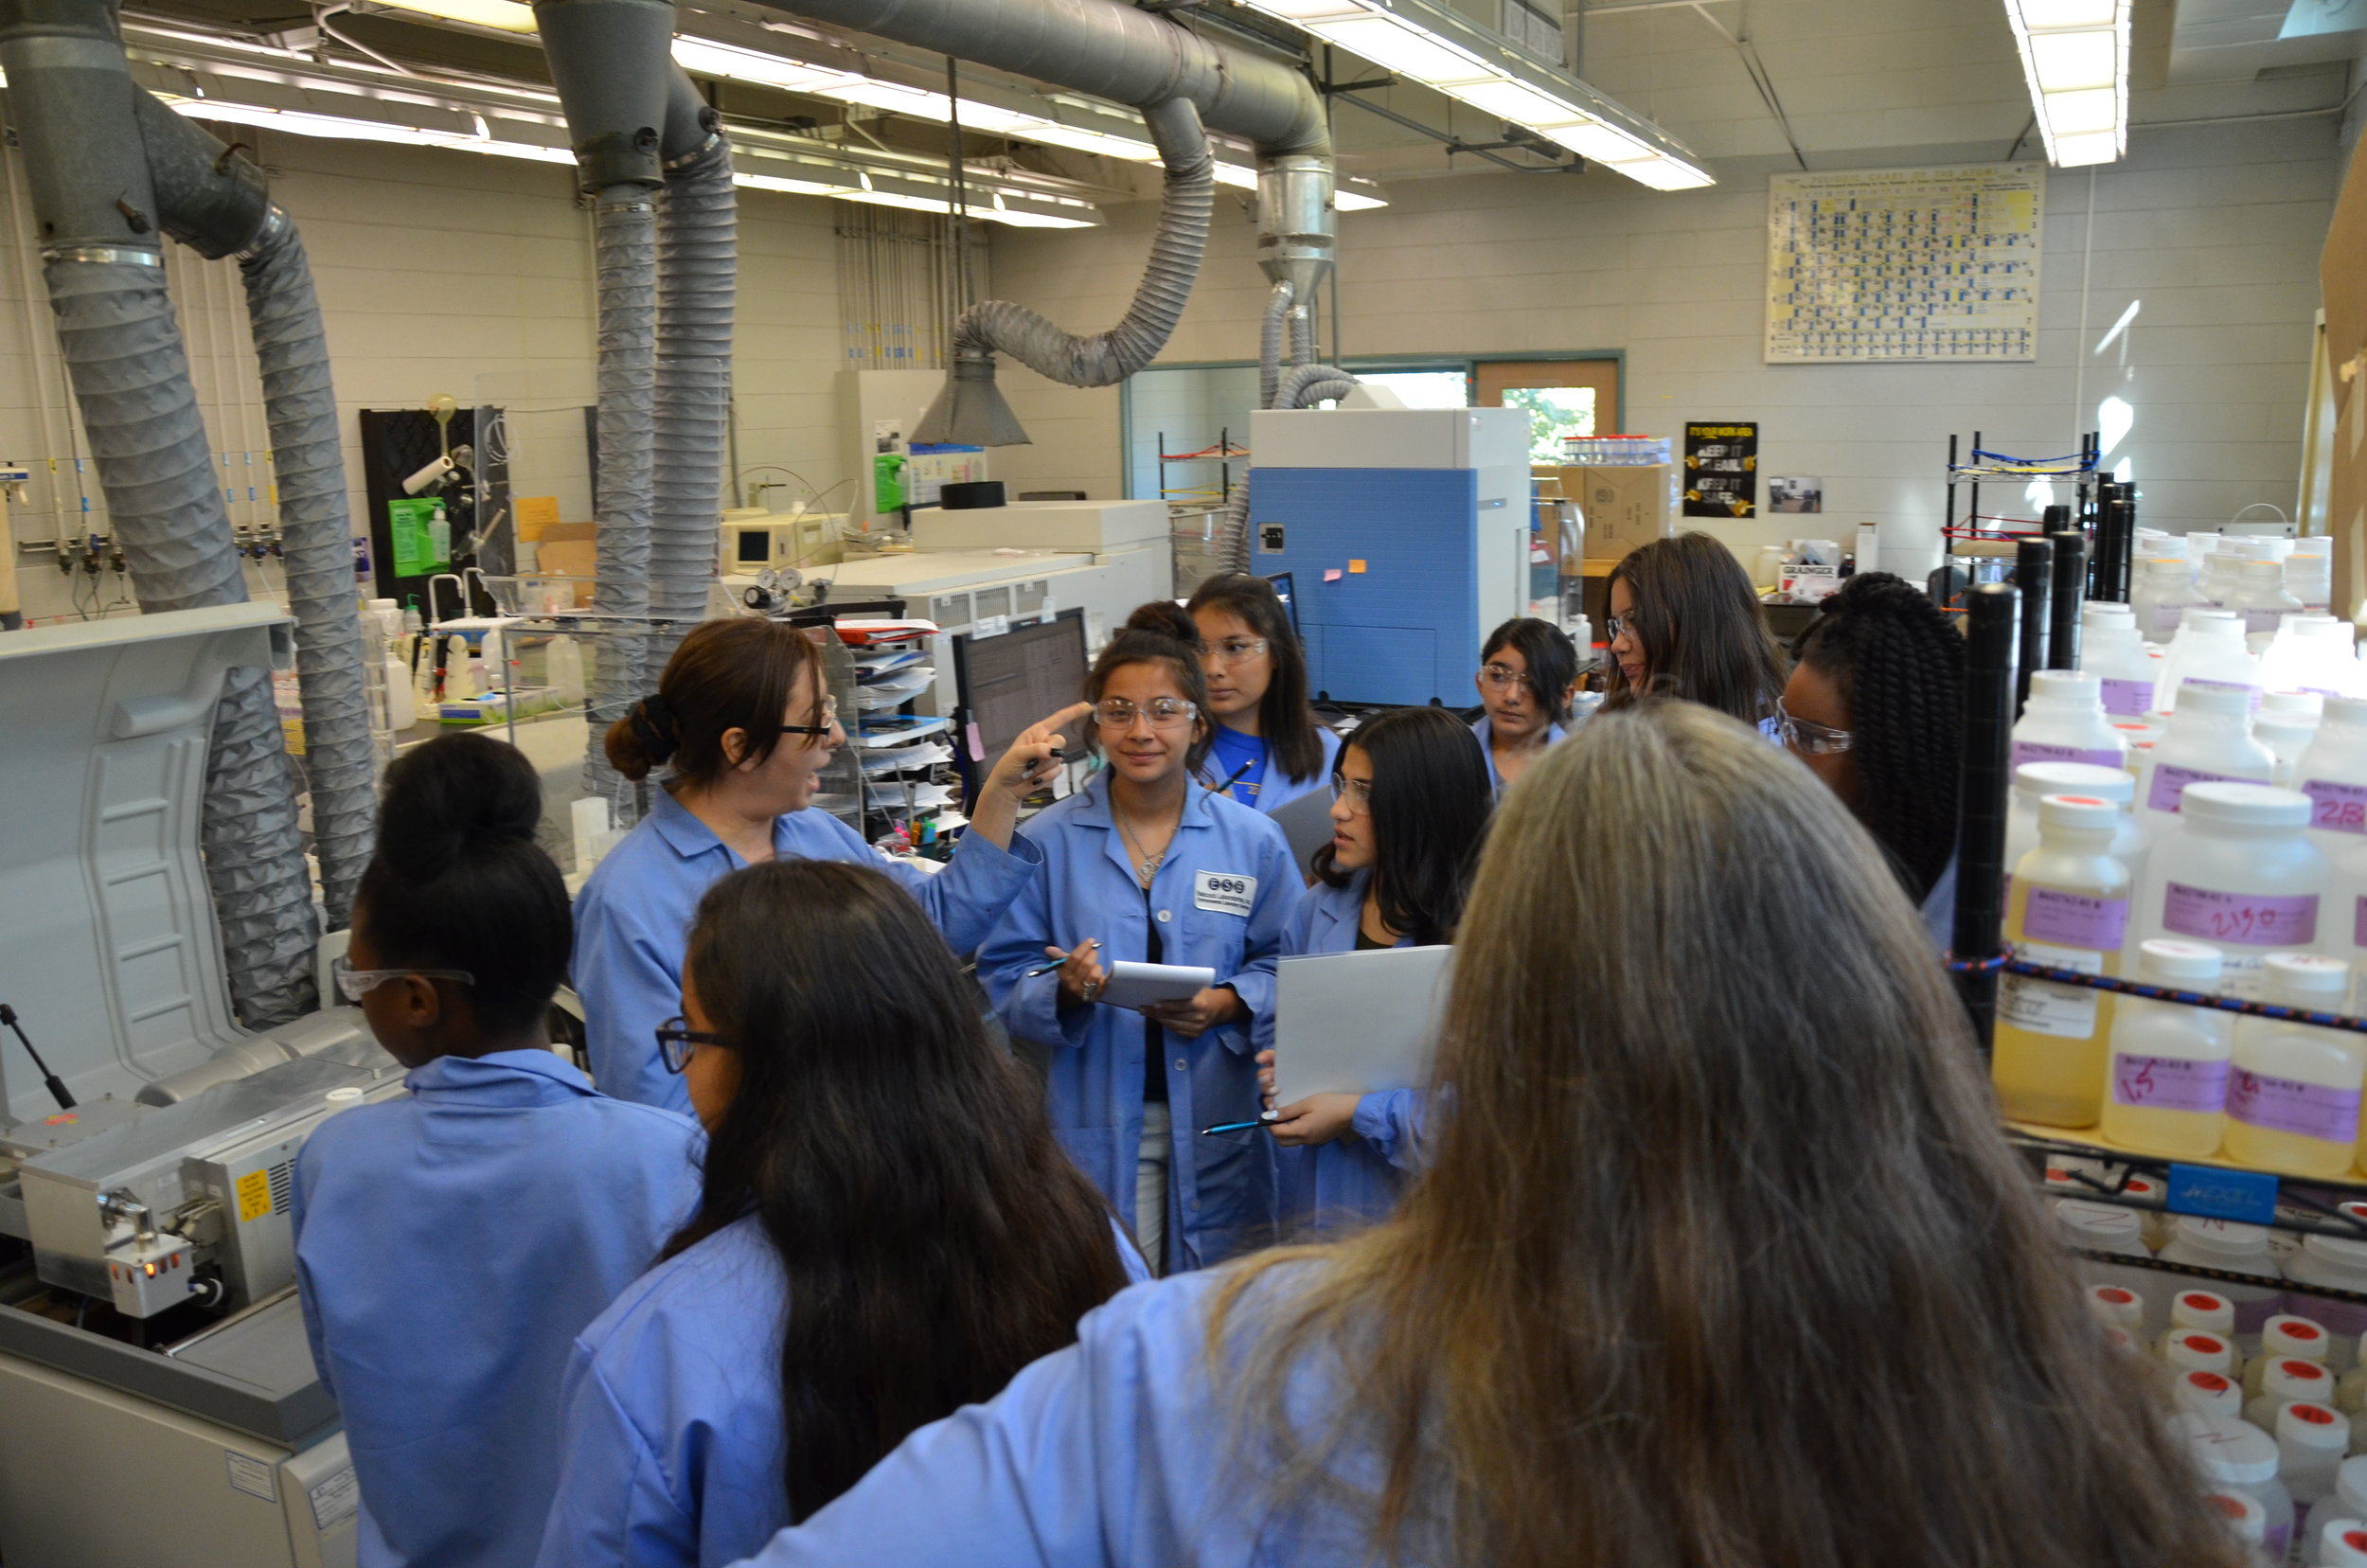 Babcock Labs is proud to support girls and women in STEM